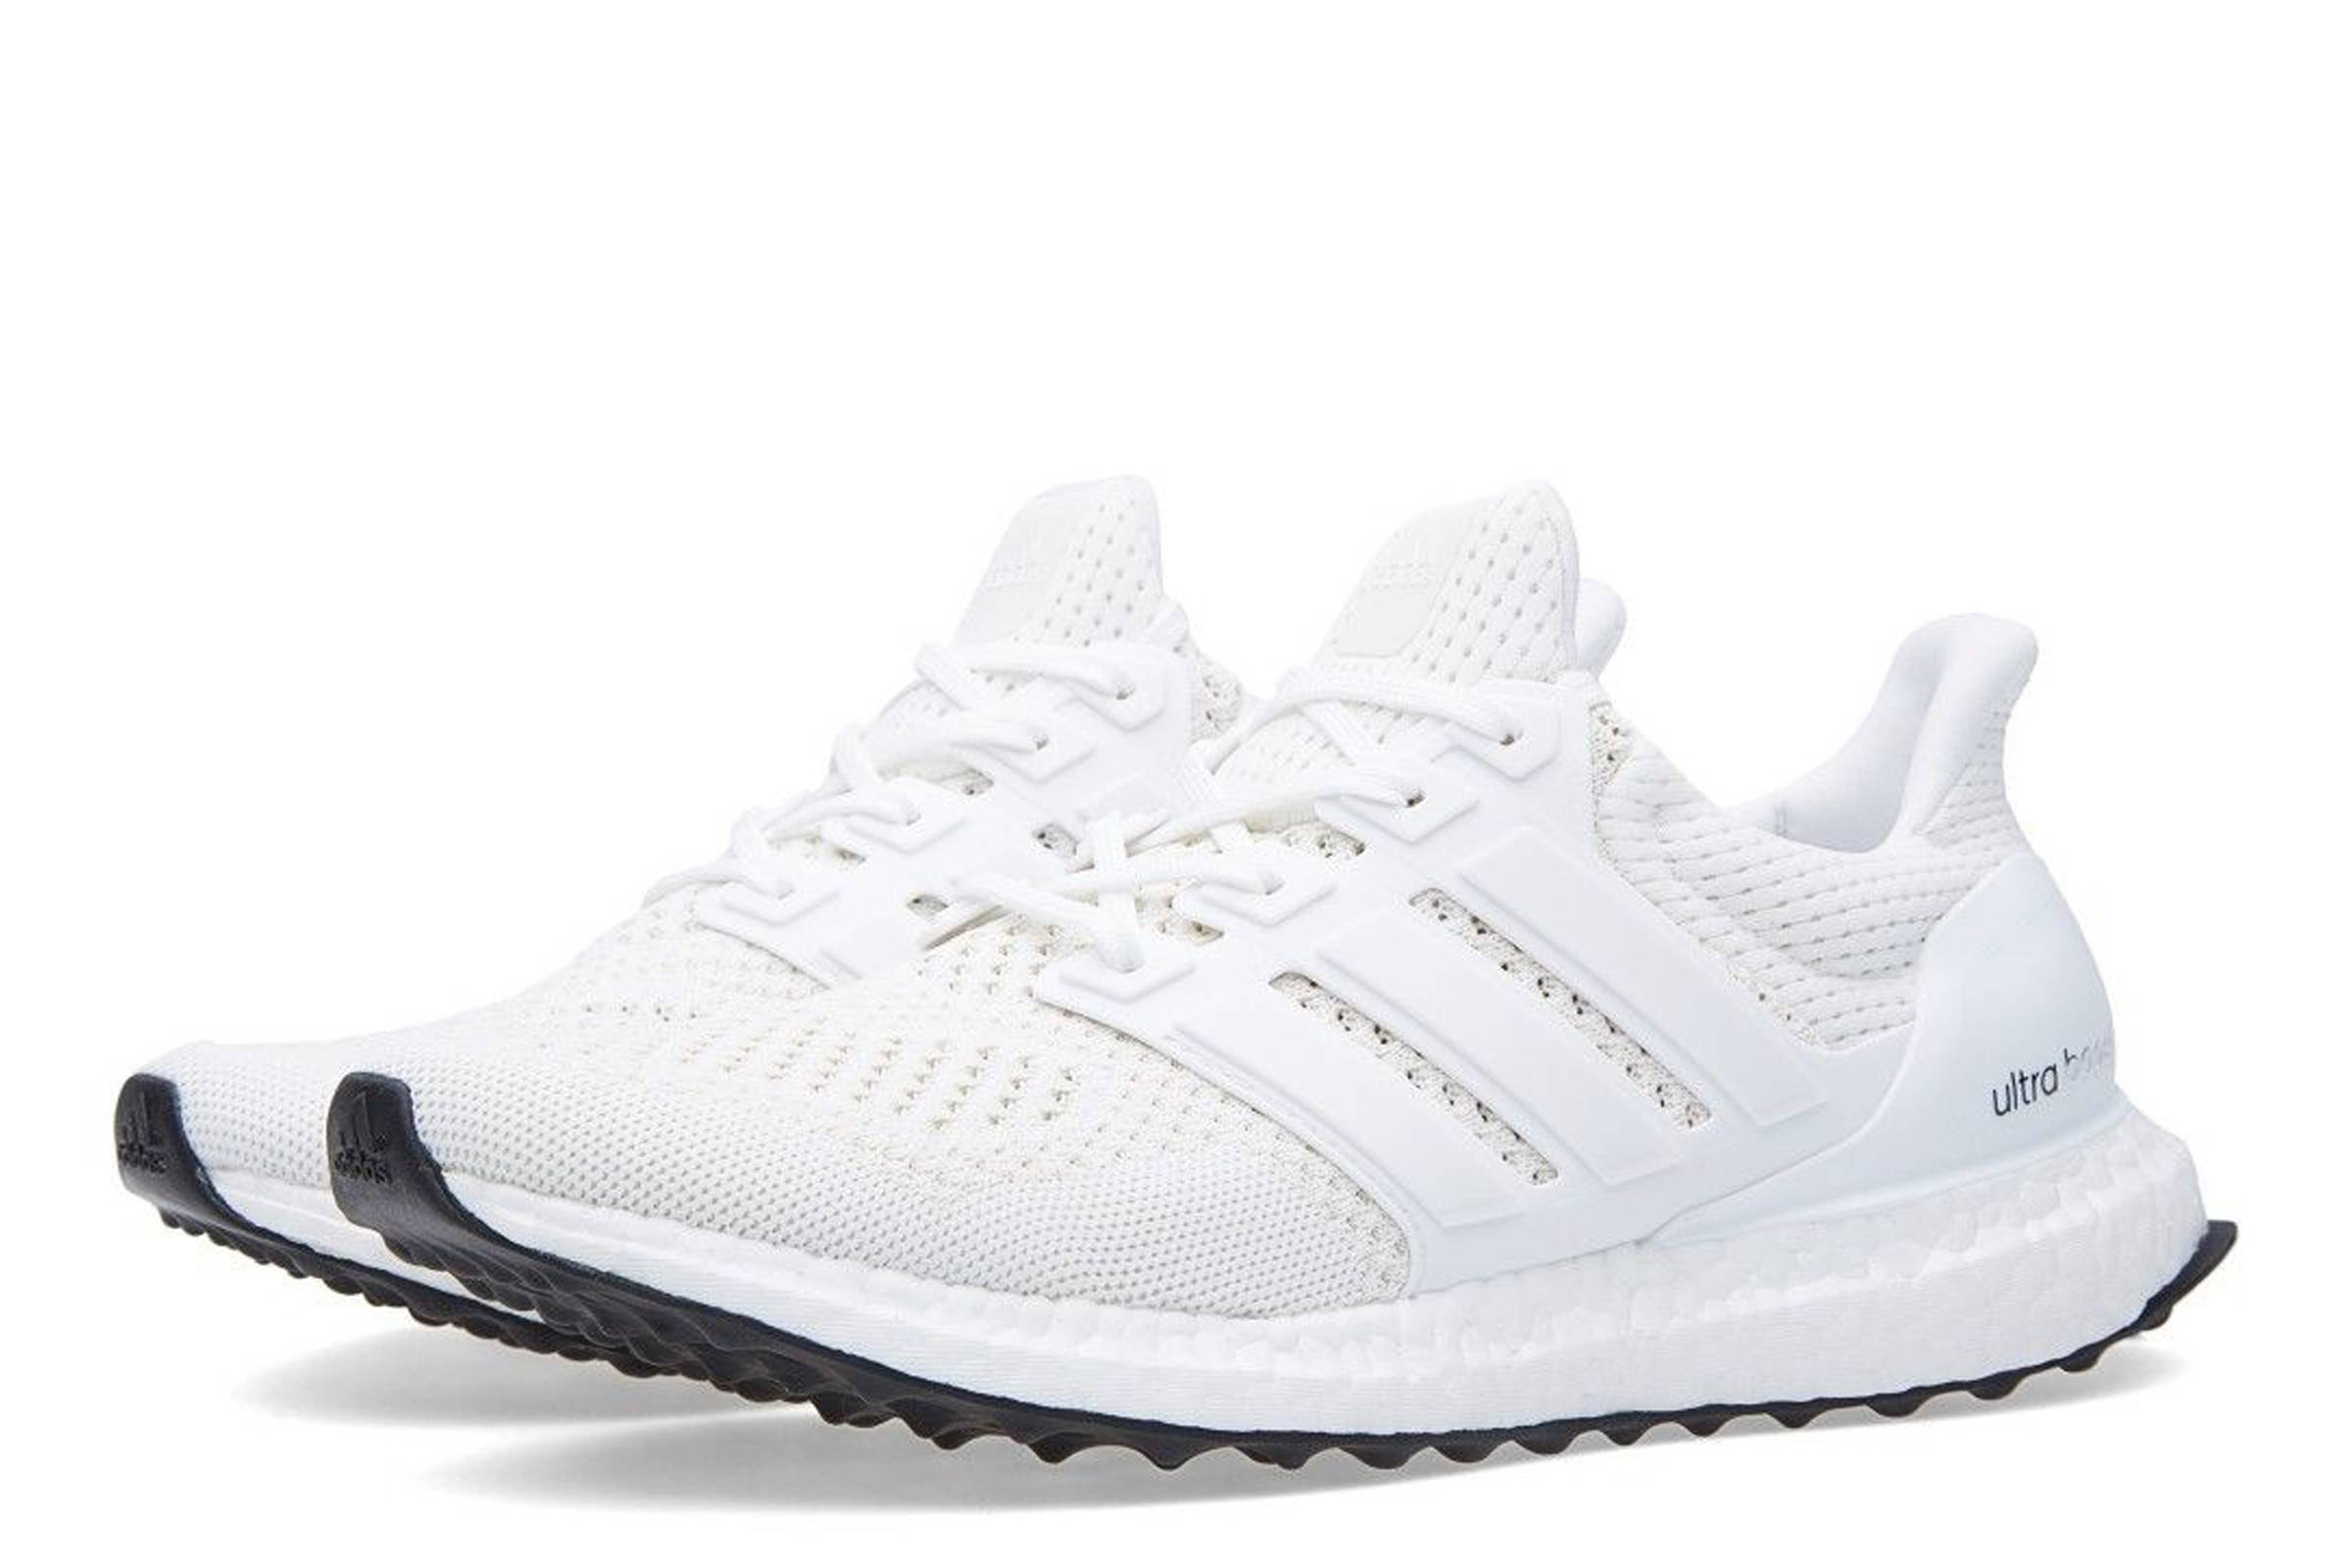 best cheap 7b9b0 760e5 adidas Ultra Boost. Elite runners and  streetbeasts live wildly different  lives, but since 2015, a single shoe has carried each over pavement with  ease.